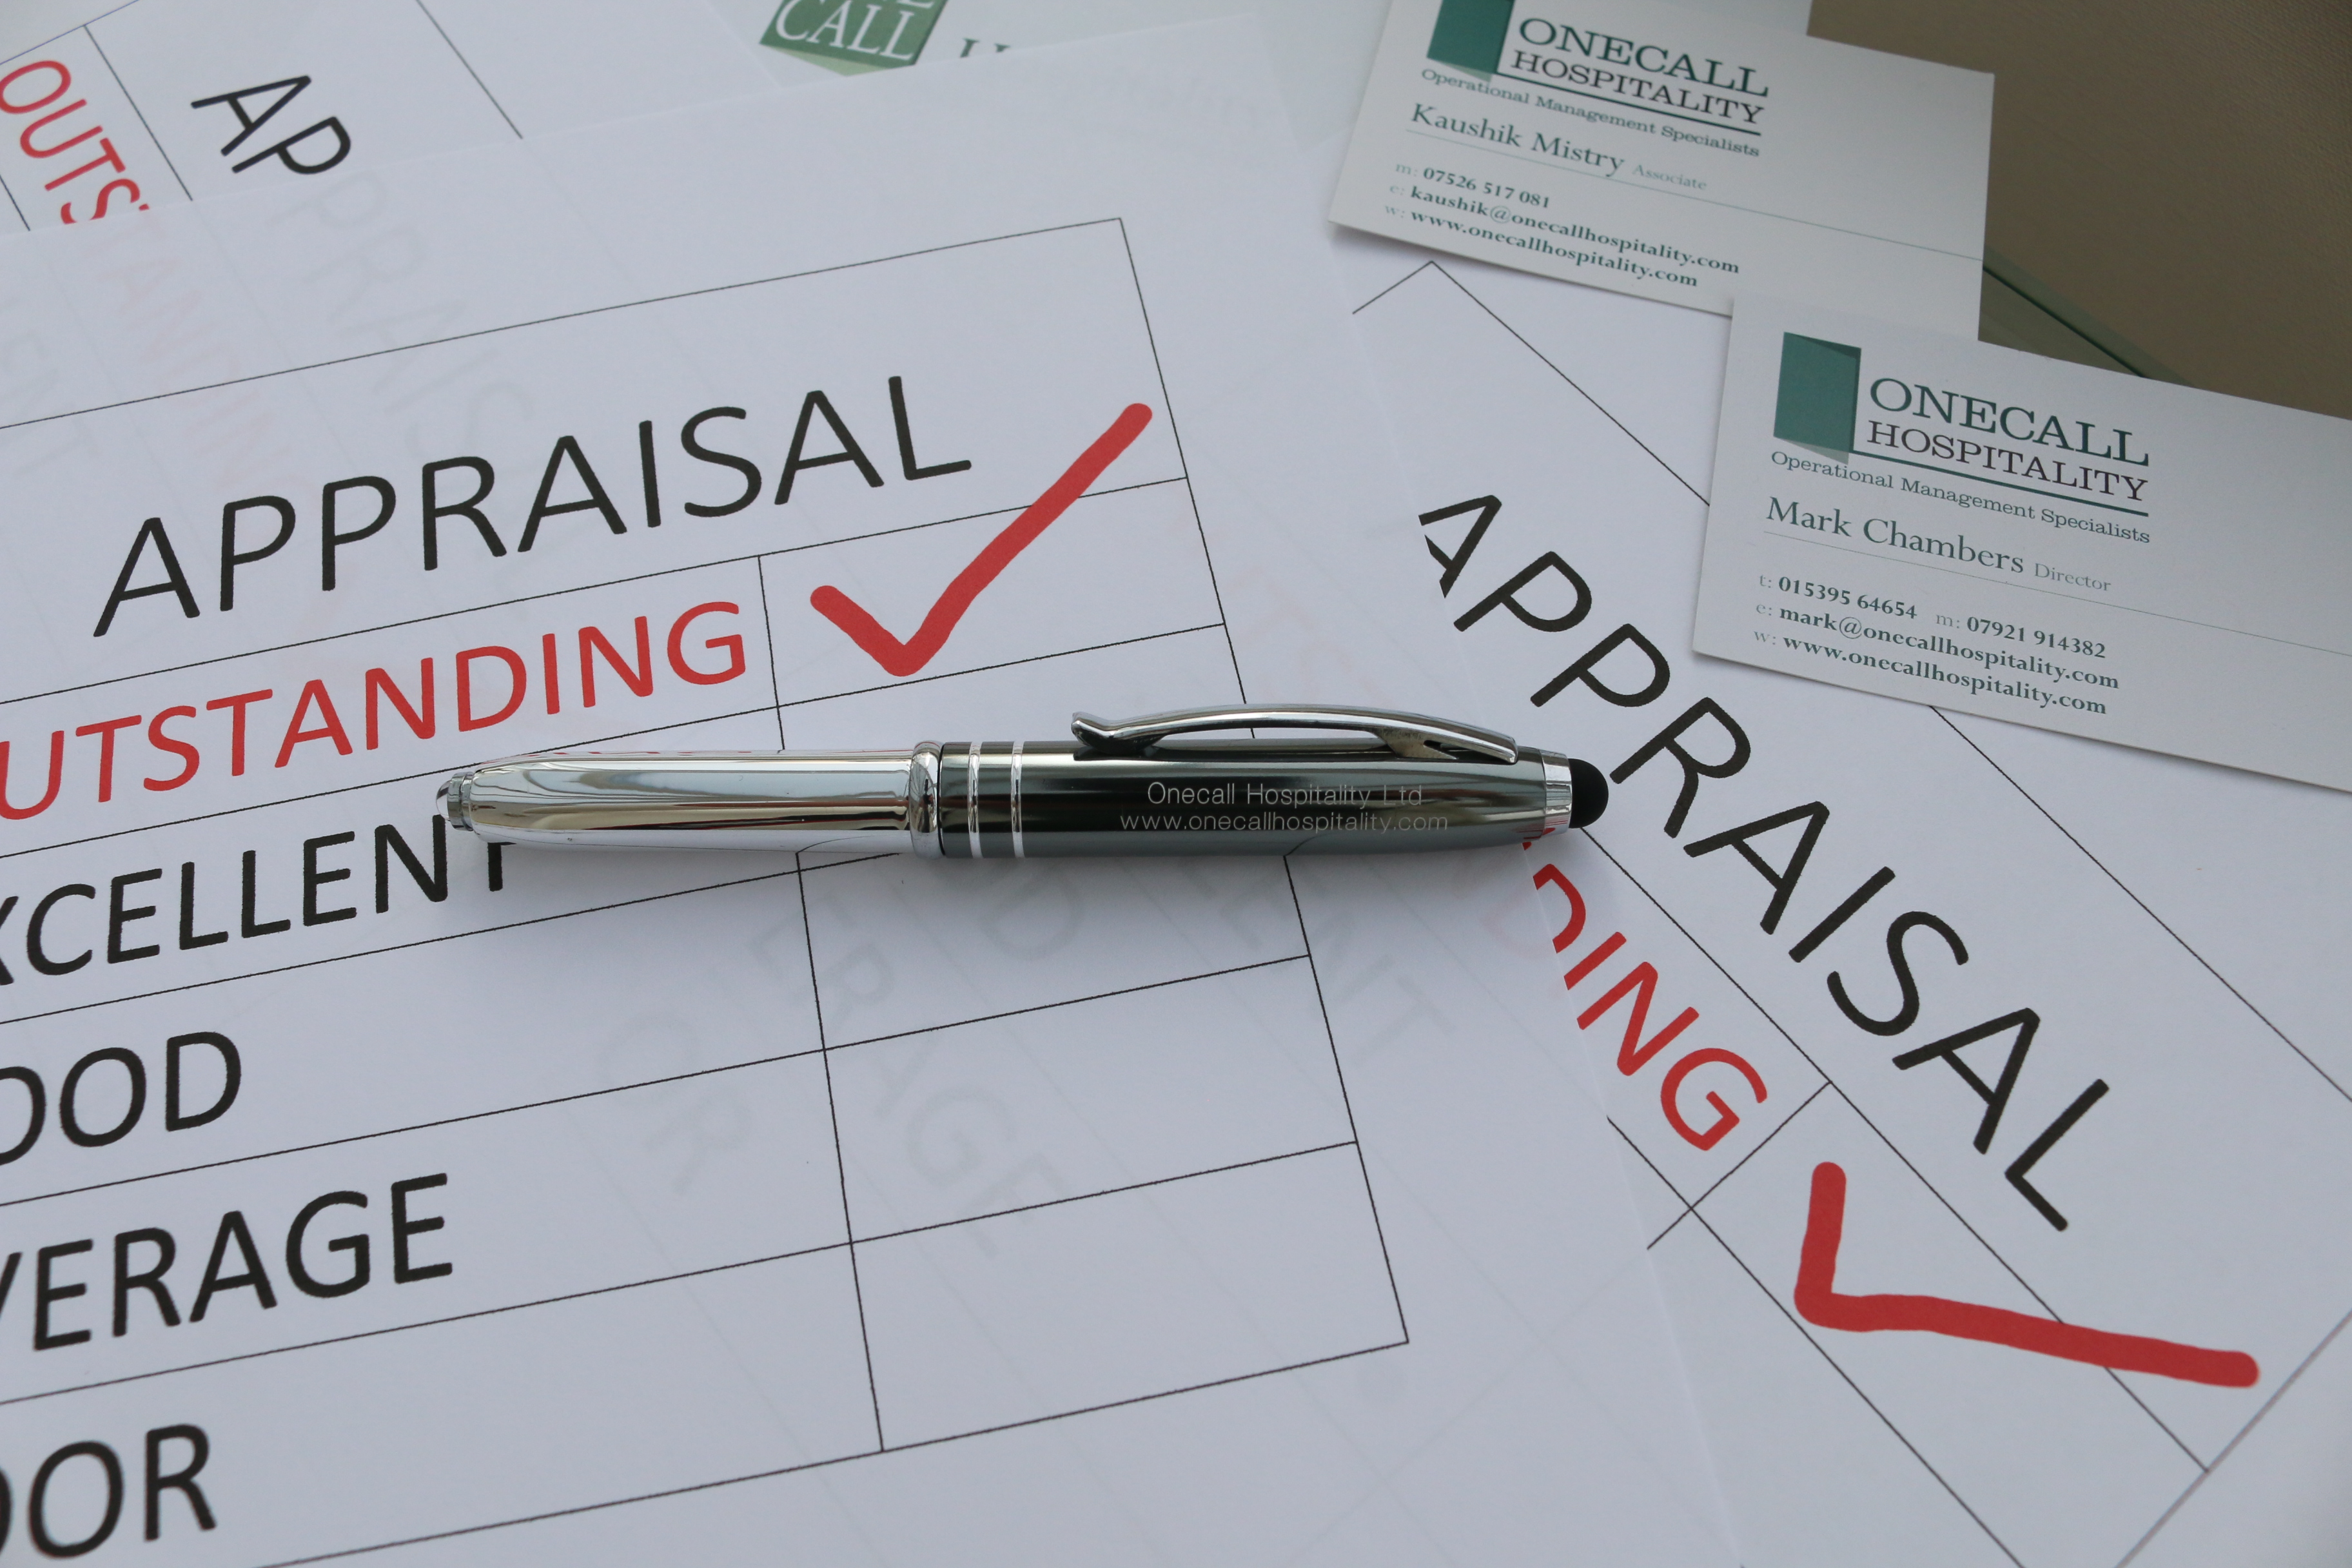 Appraisal Workshop